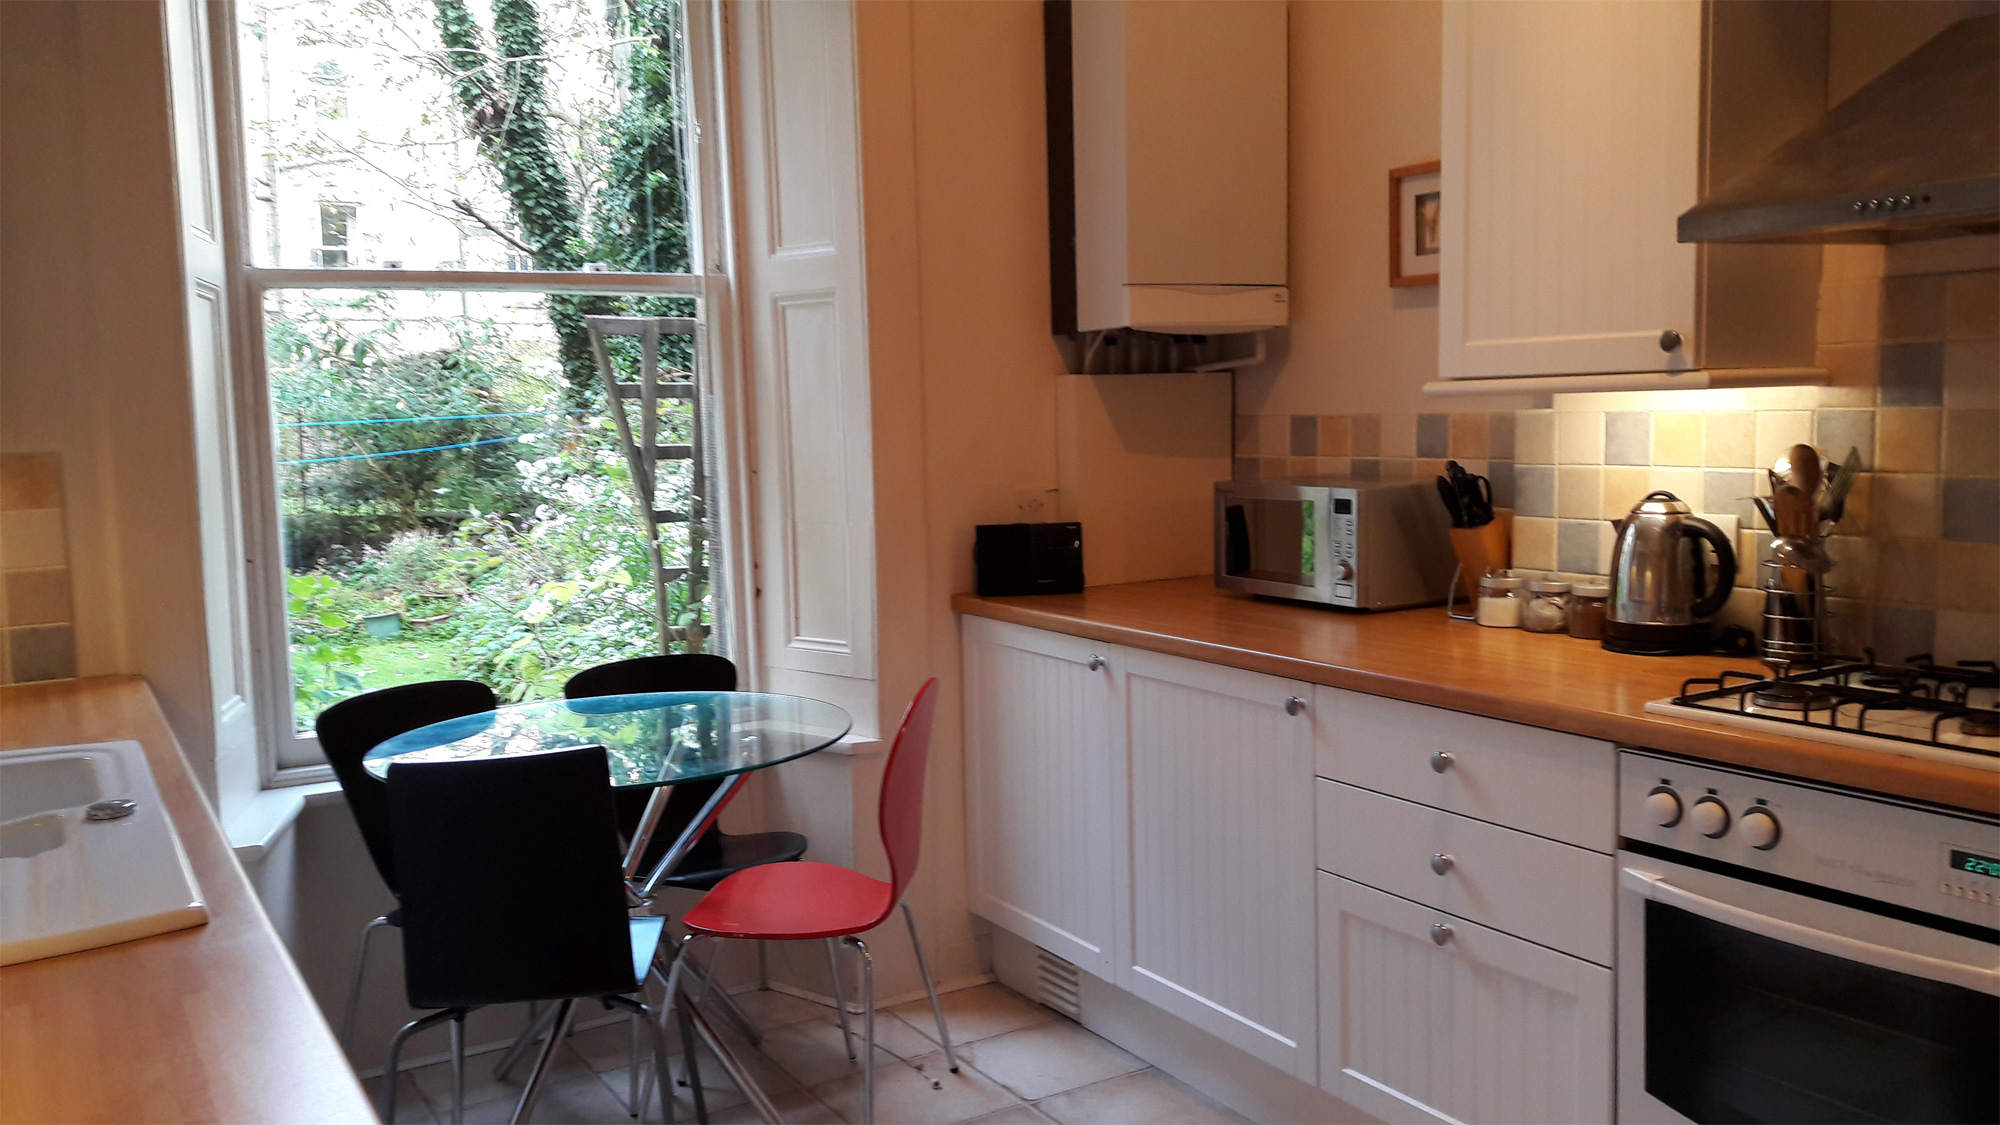 The fully fitted kitchen and table by the window overlooking the back garden